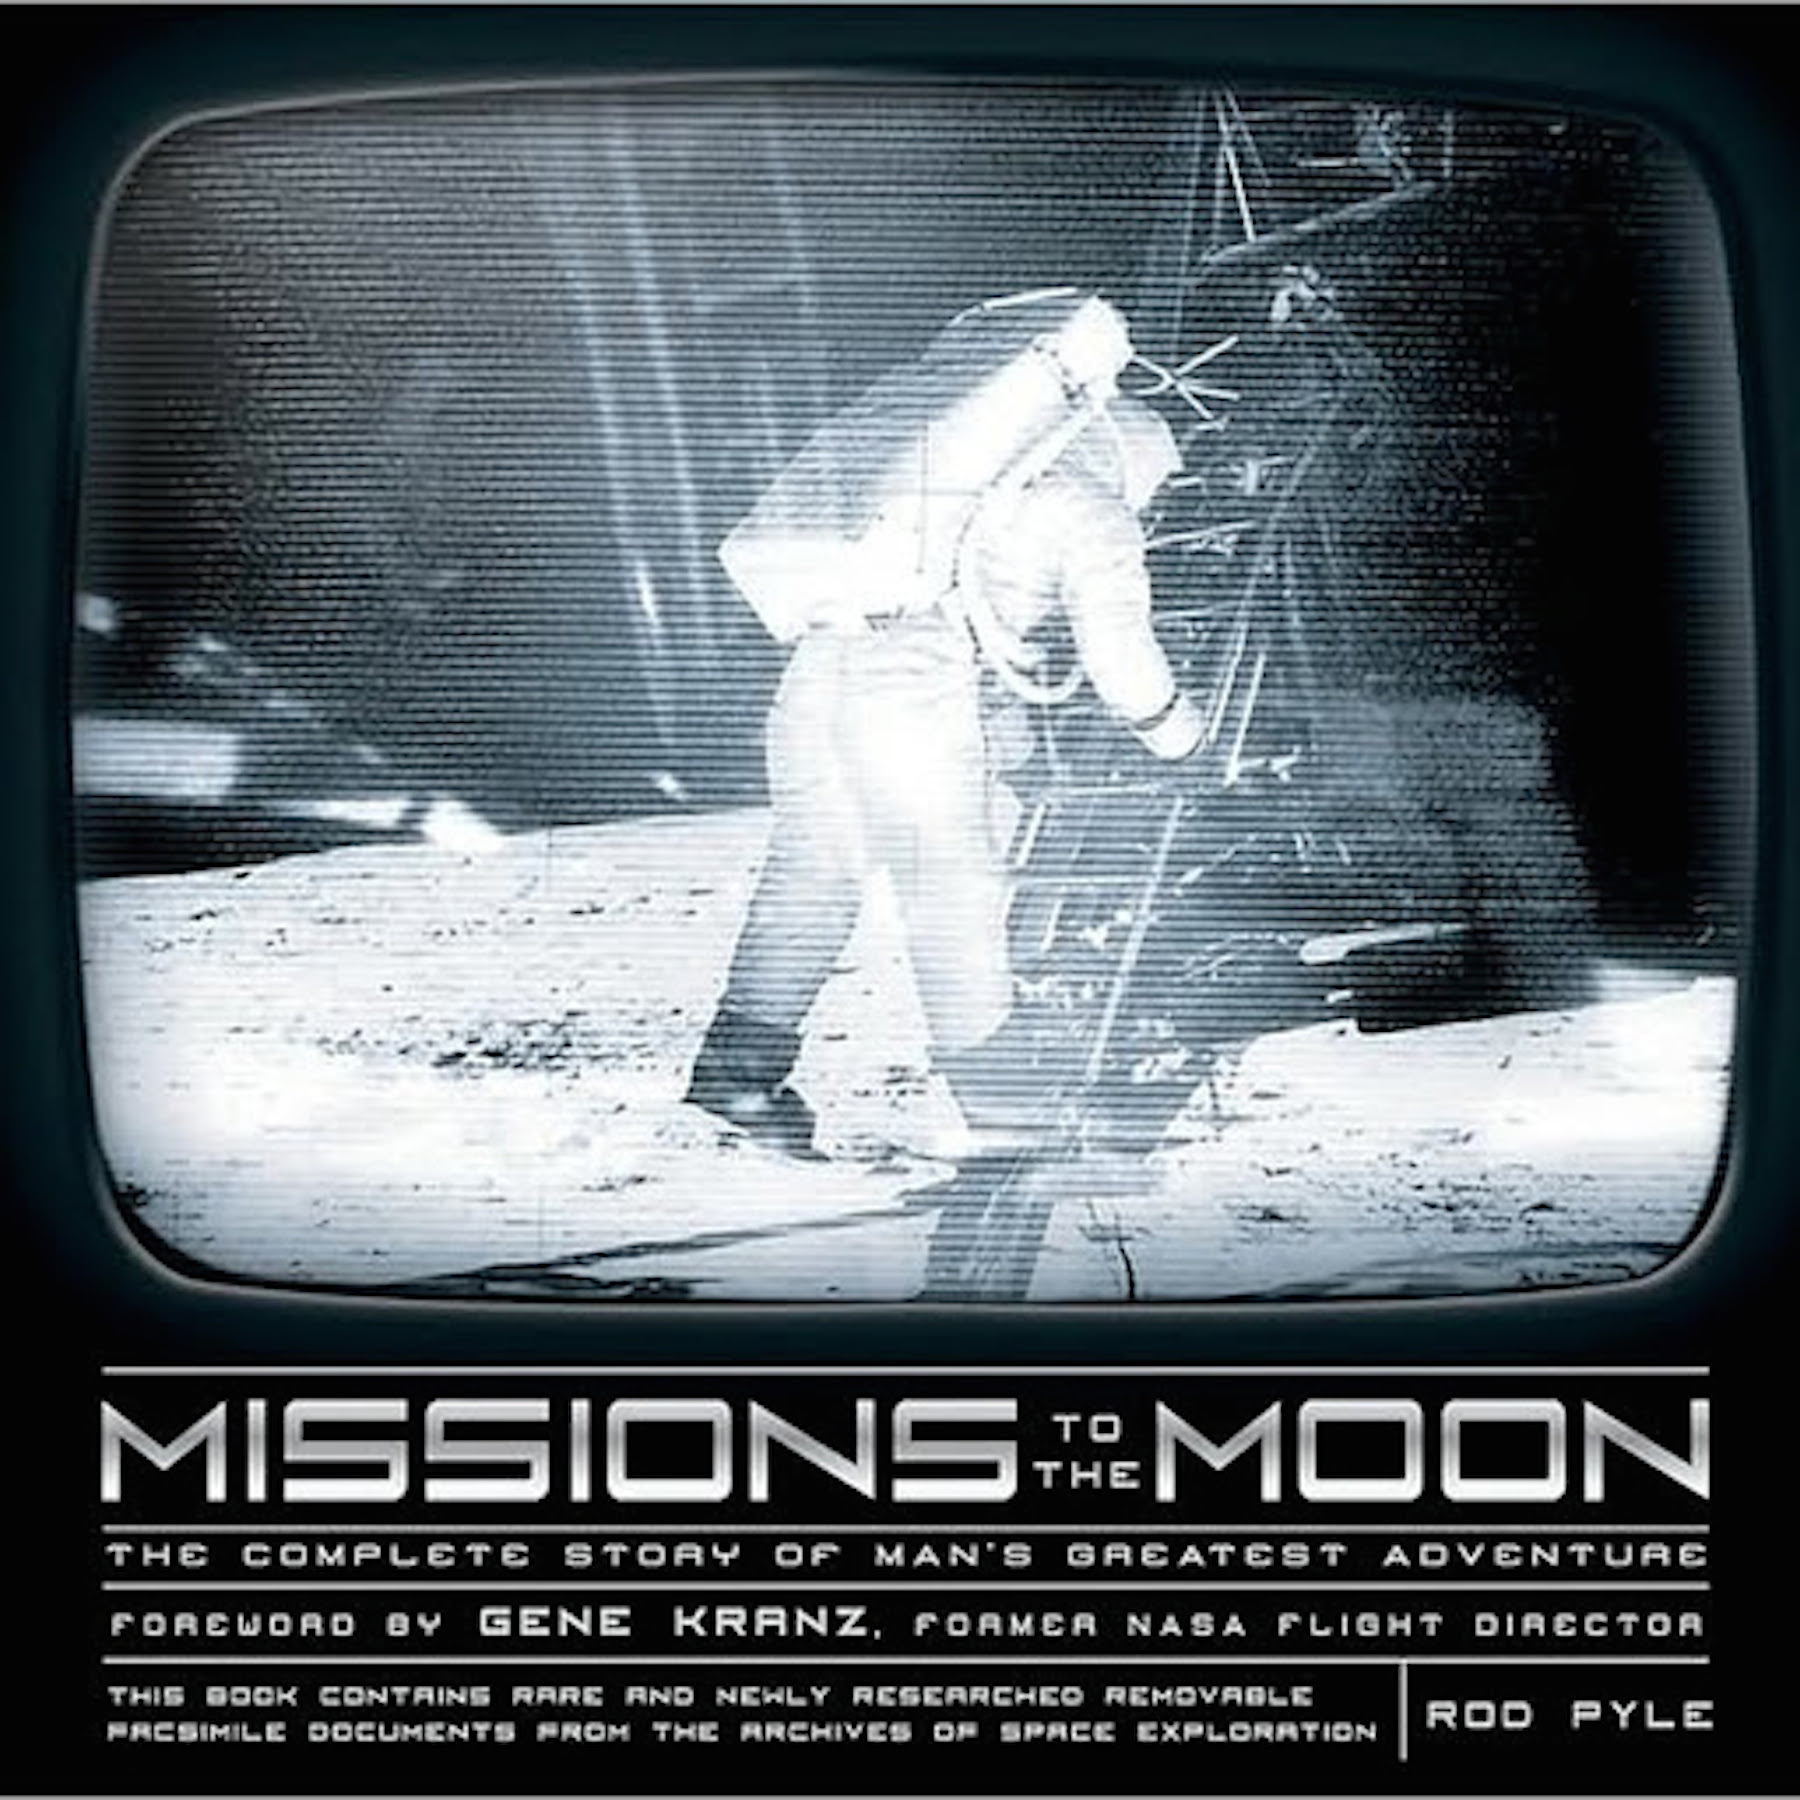 missions to the moon cover .jpg